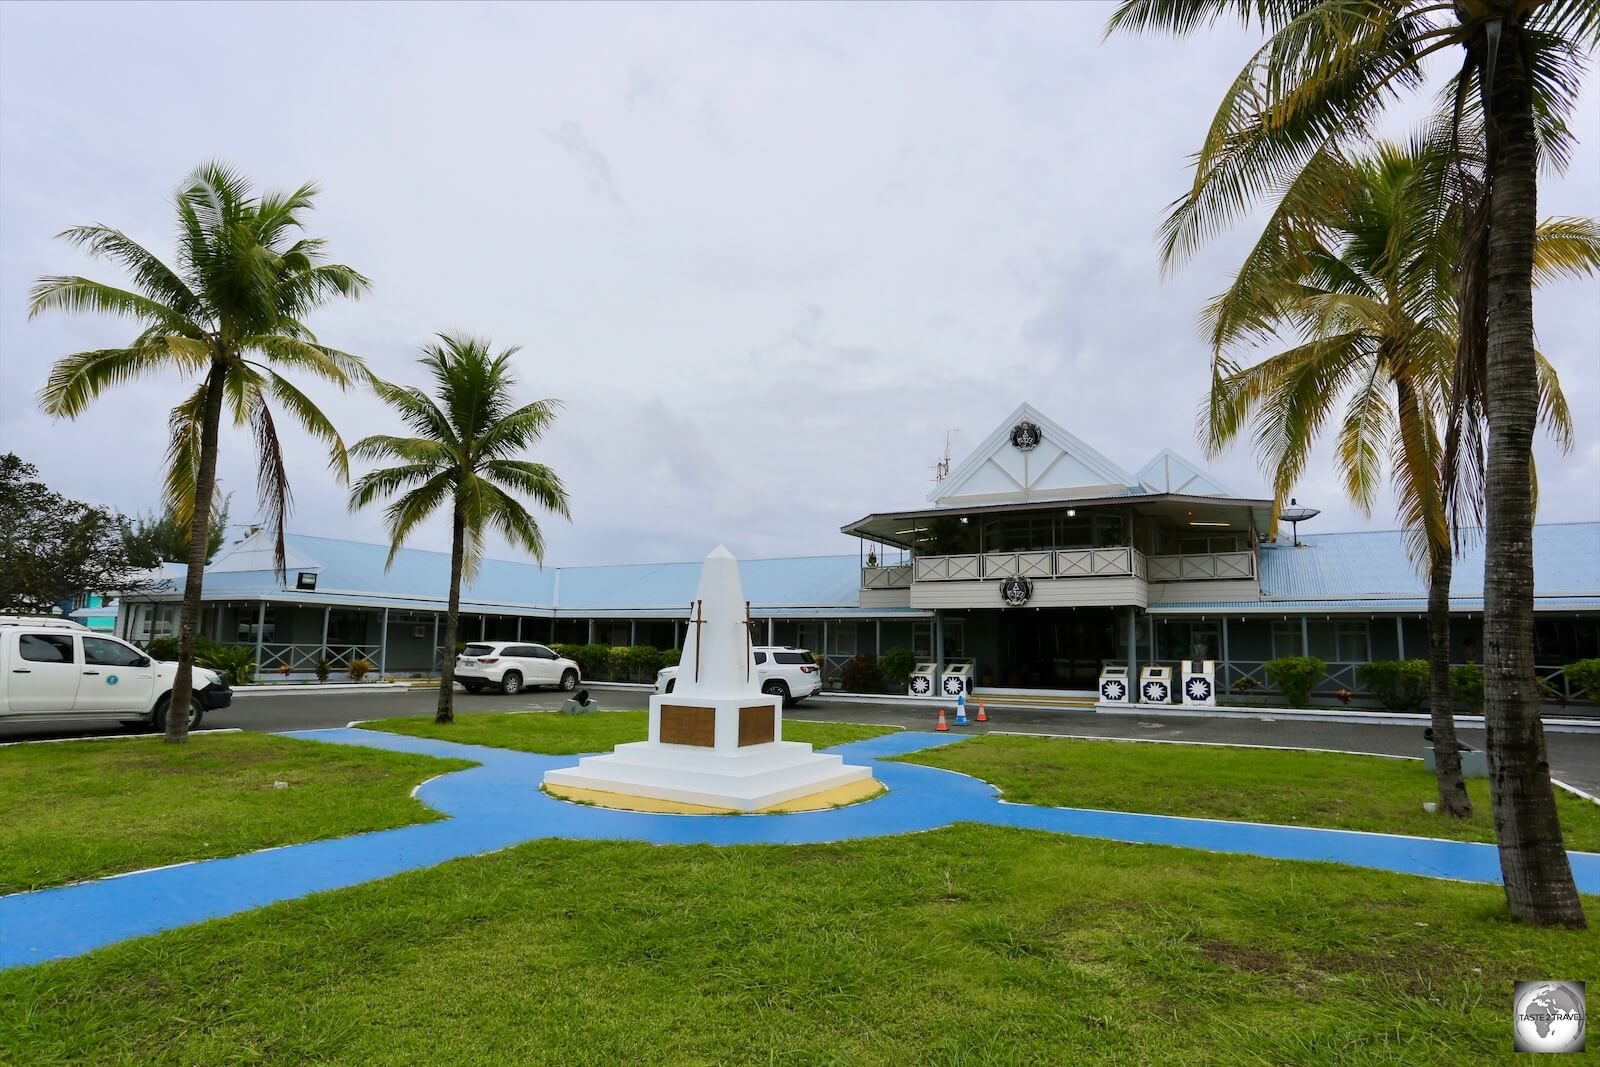 A view of the Ministerial Building with the Nauru War Memorial in the foreground.